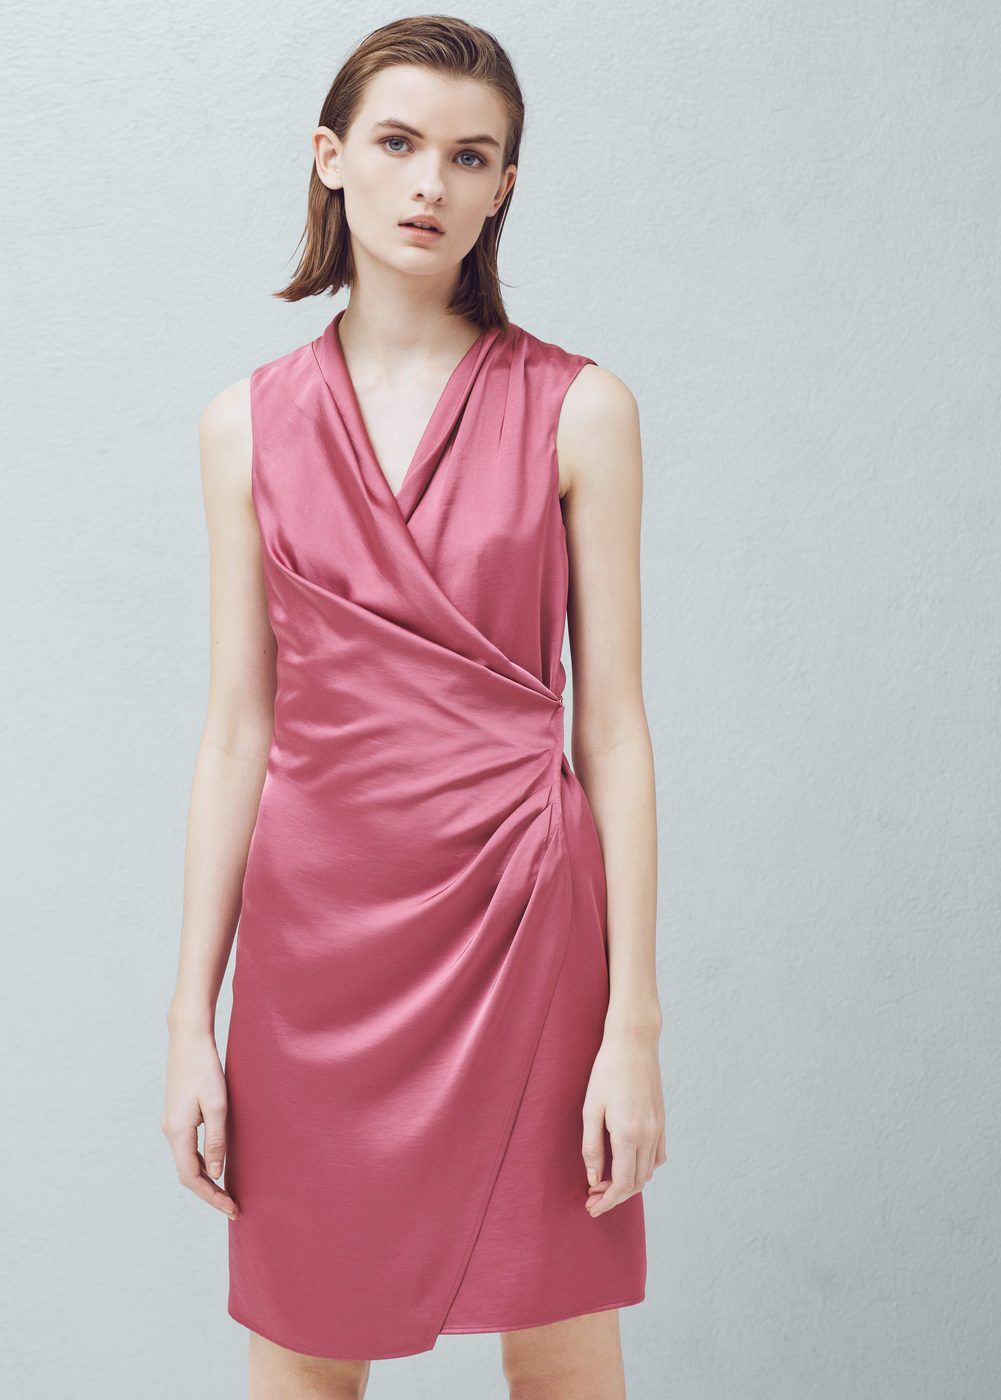 Wrapped satin dress - Woman | Pinterest | Vestidos de mujer, Cruzado ...